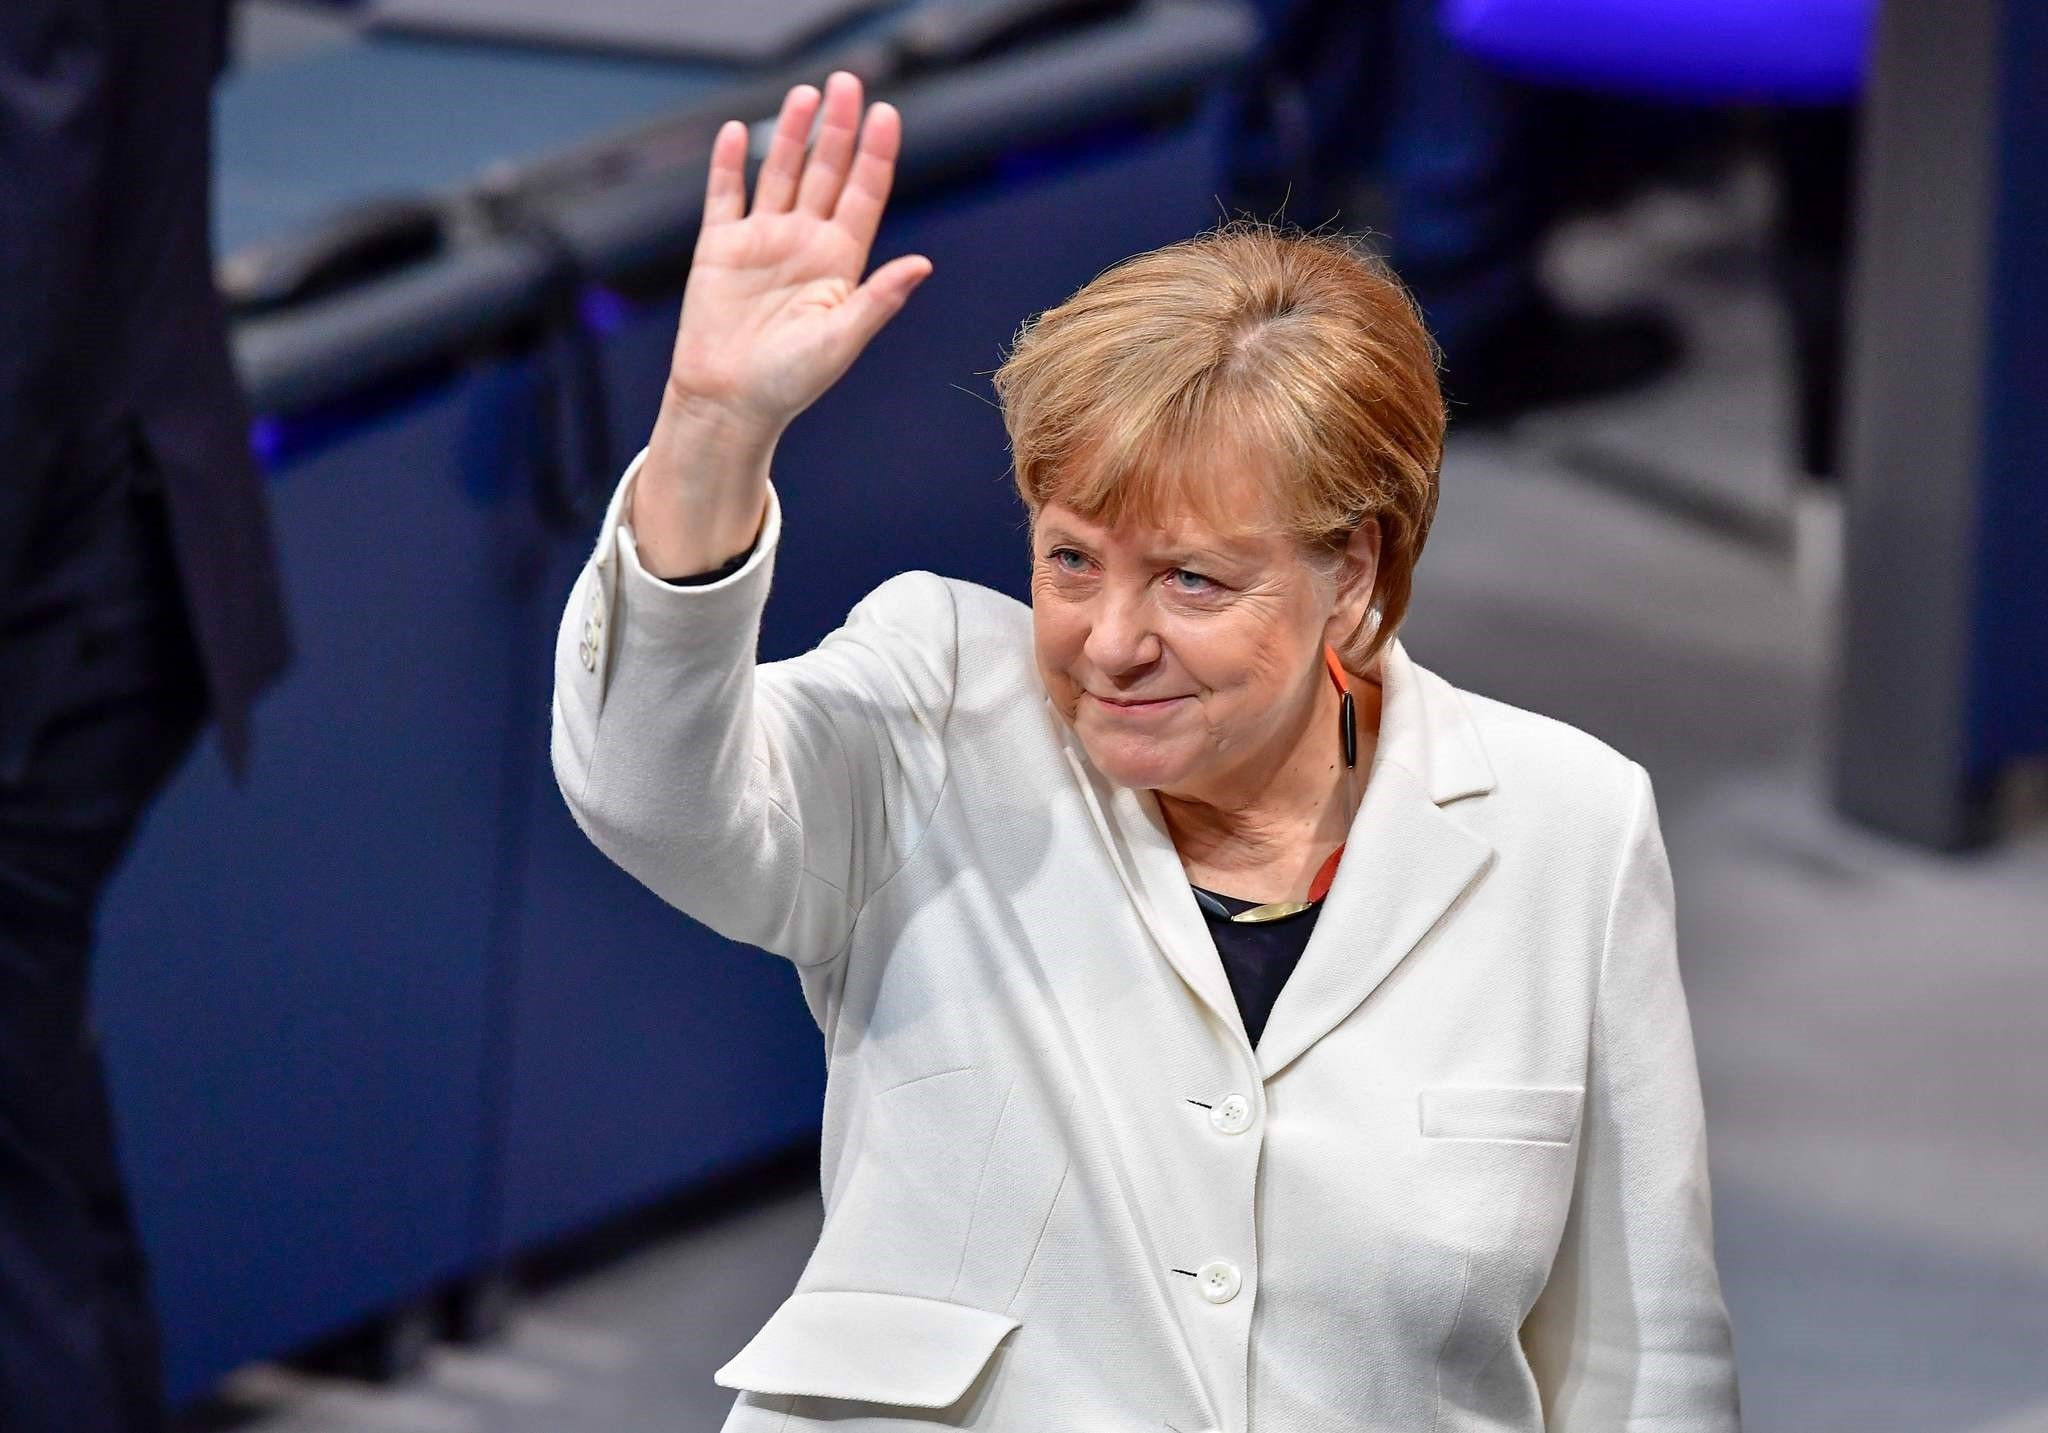 German Chancellor Angela Merkel waves as she arrives to attends the session for the election of the German Chancellor at the Bundestag (lower house of parliament) on March 14, 2018 in Berlin. (AFP Photo)